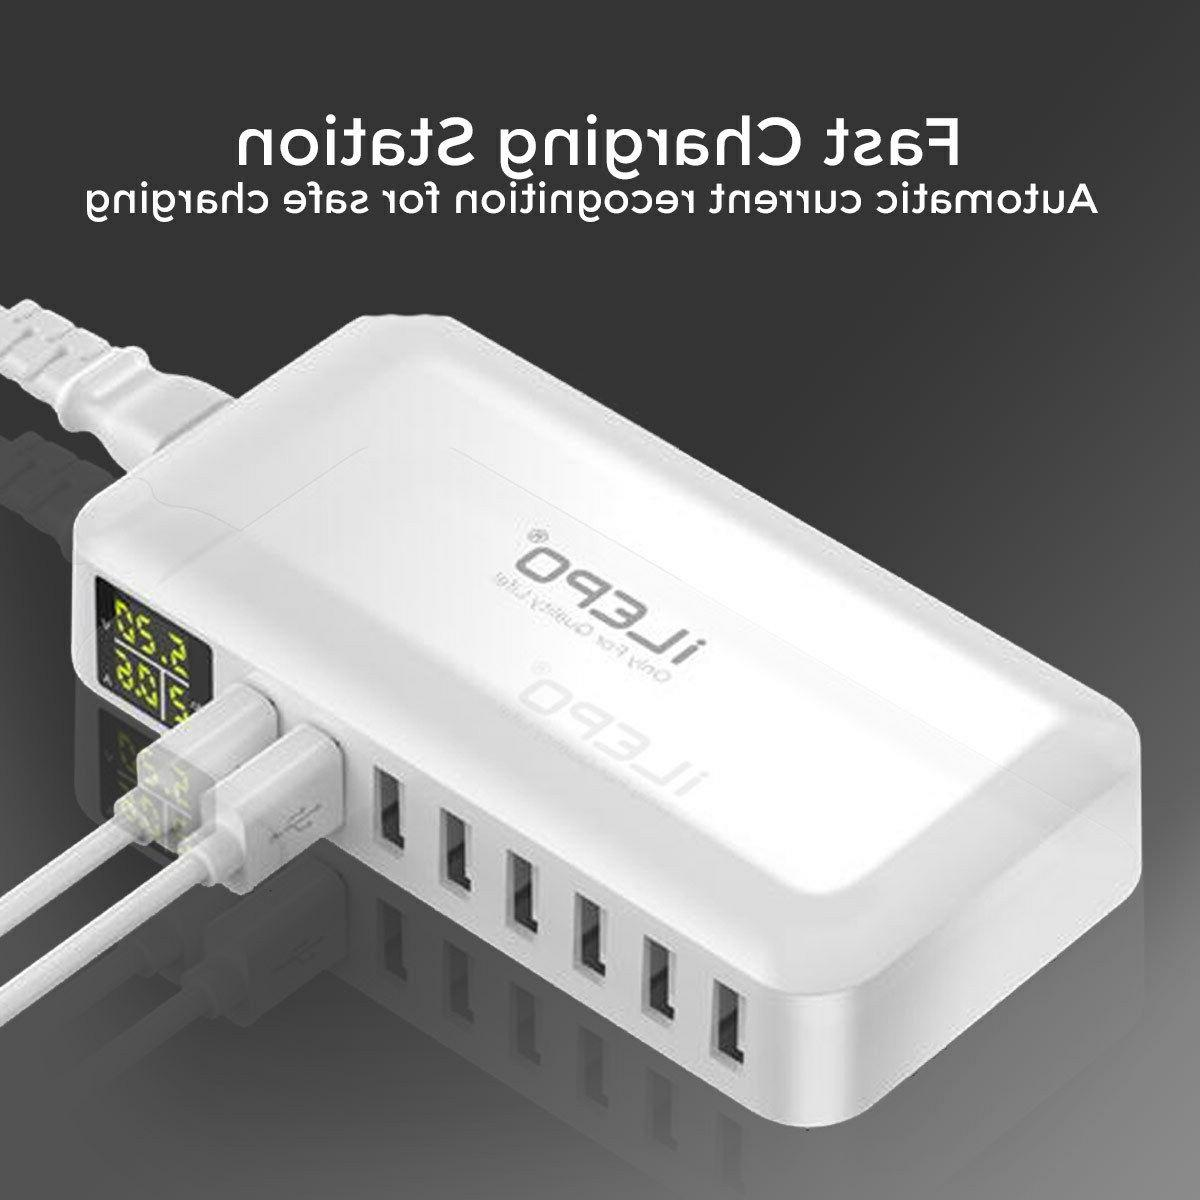 USB CHARGING STATION WALL CHARGER POWER BANK UNIVERSAL 8 MUL